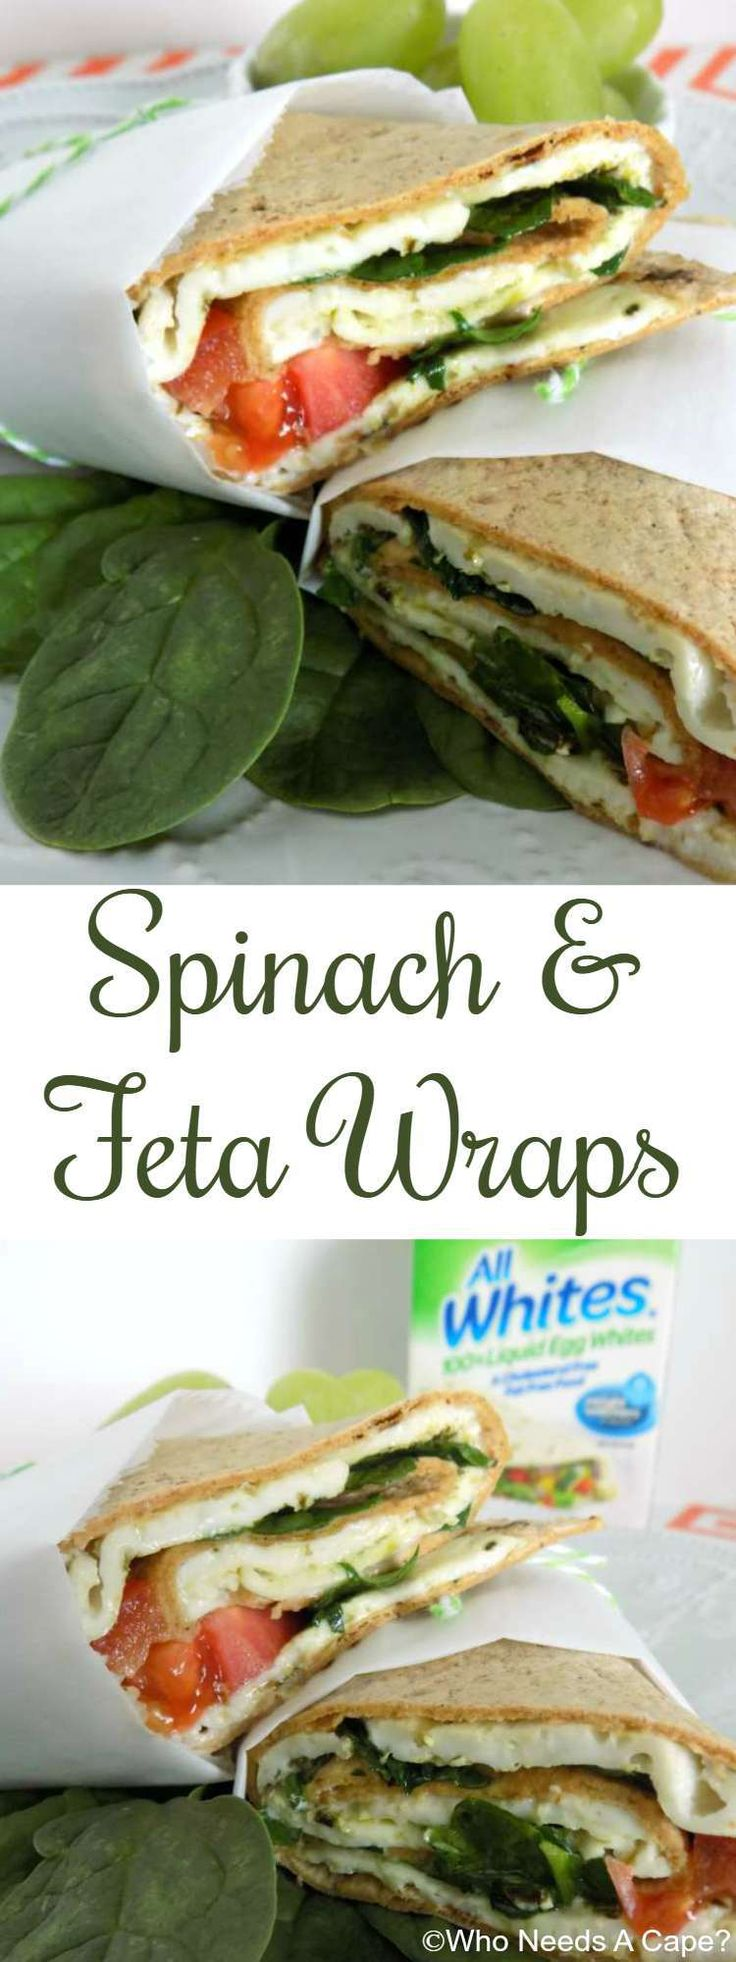 Make Spinach & Feta Wraps, a light and lovely lunch or dinner using AllWhites Egg White product. Loaded with delicious flavors yet low-calorie. #ad #AllWhitesEggWhites